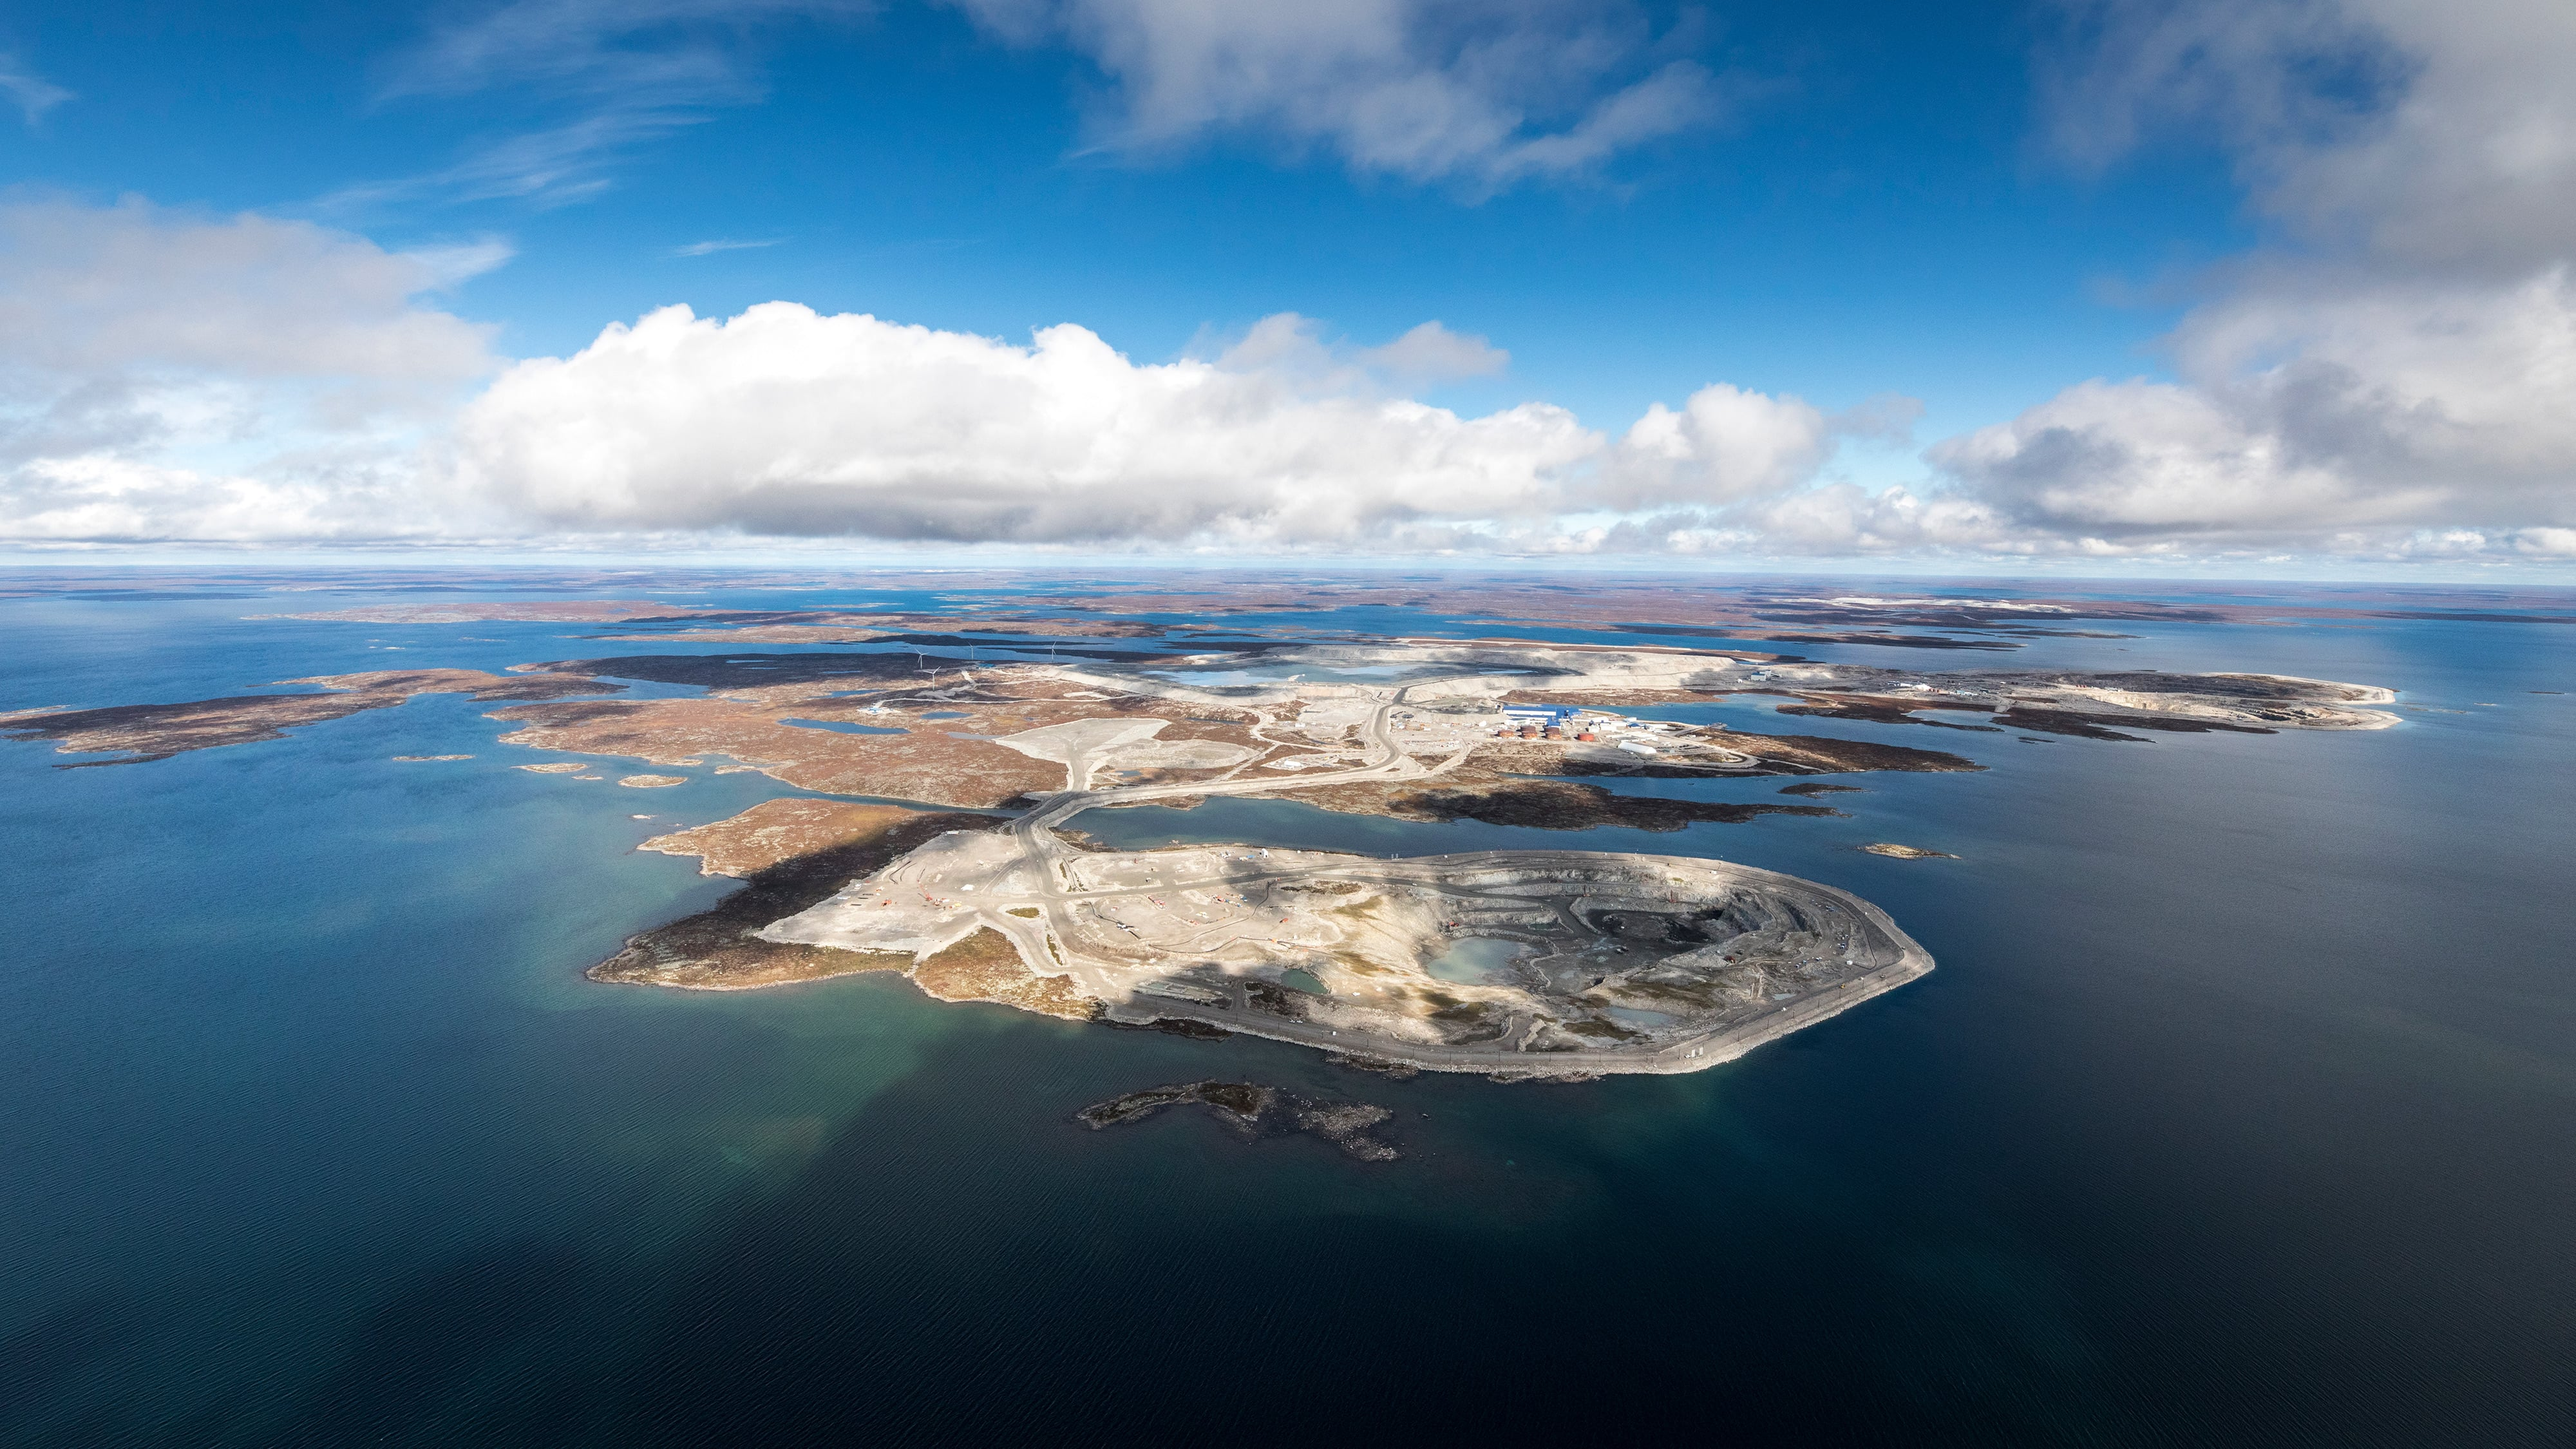 Diavik from the air